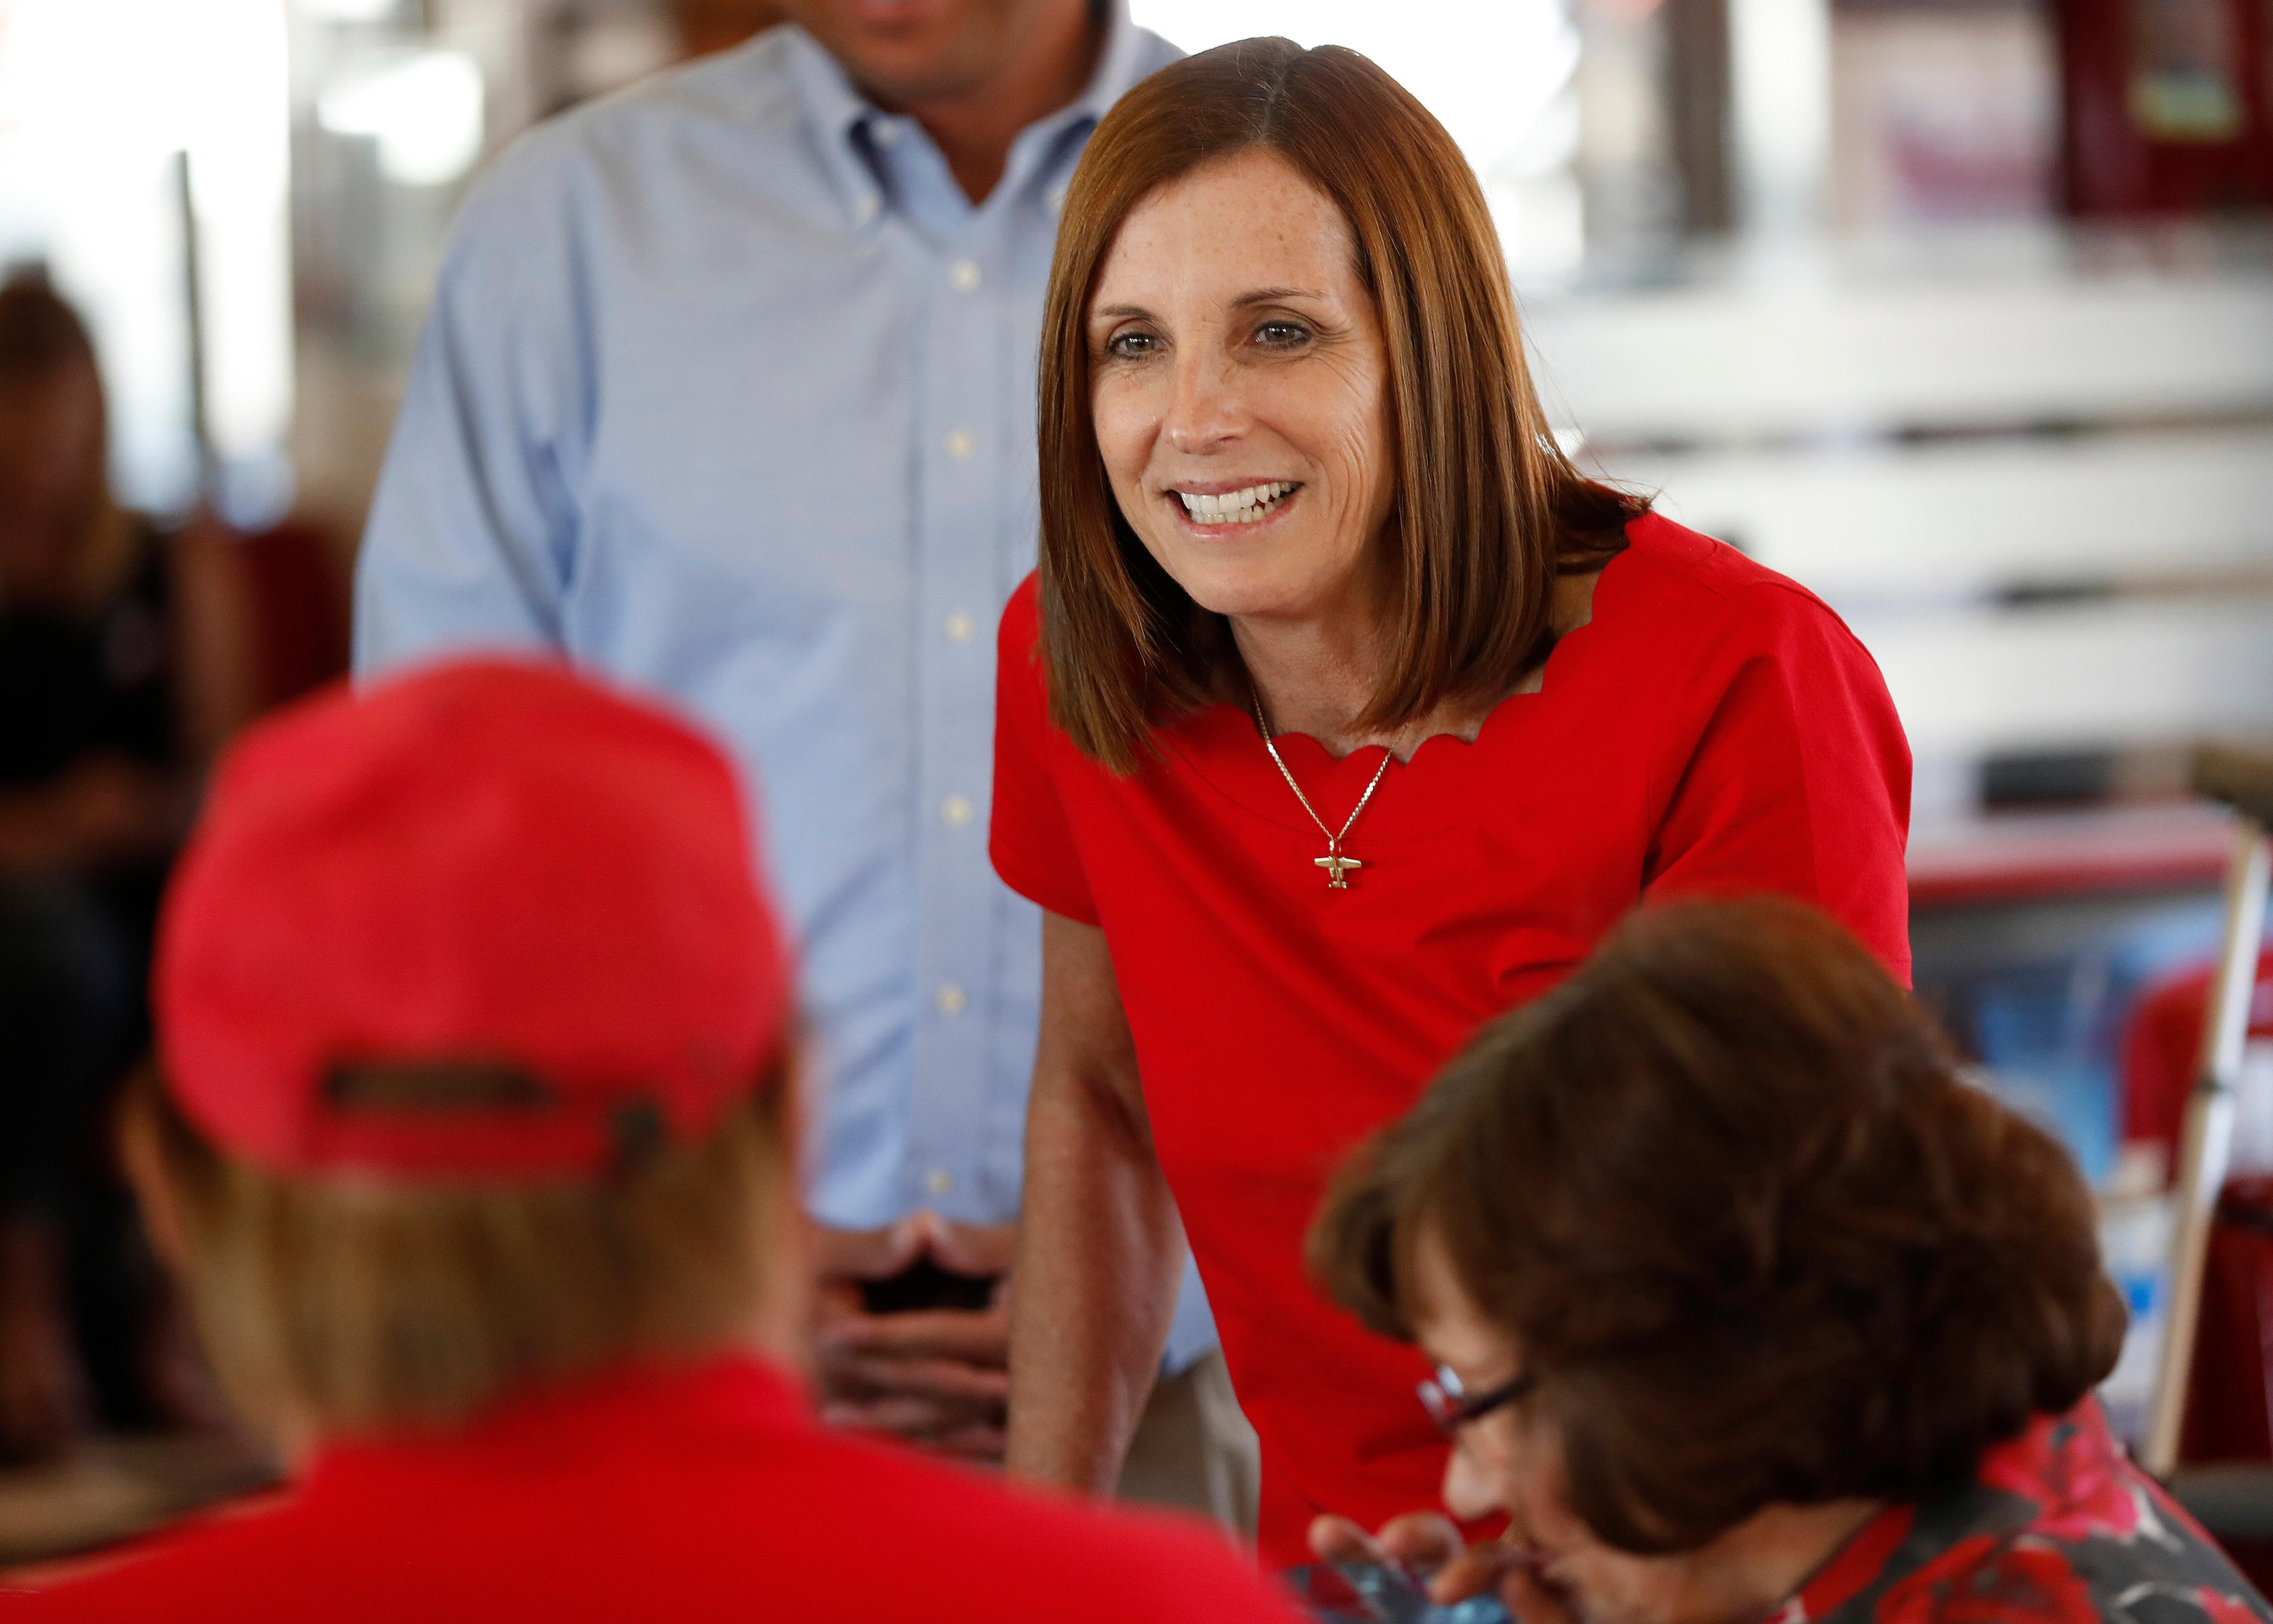 Arizona Republican senatorial candidate Martha McSally, speaks with voters, Tuesday, Nov. 6, 2018, at Chase's diner in Chandler, Ariz. (AP Photo/Matt York)